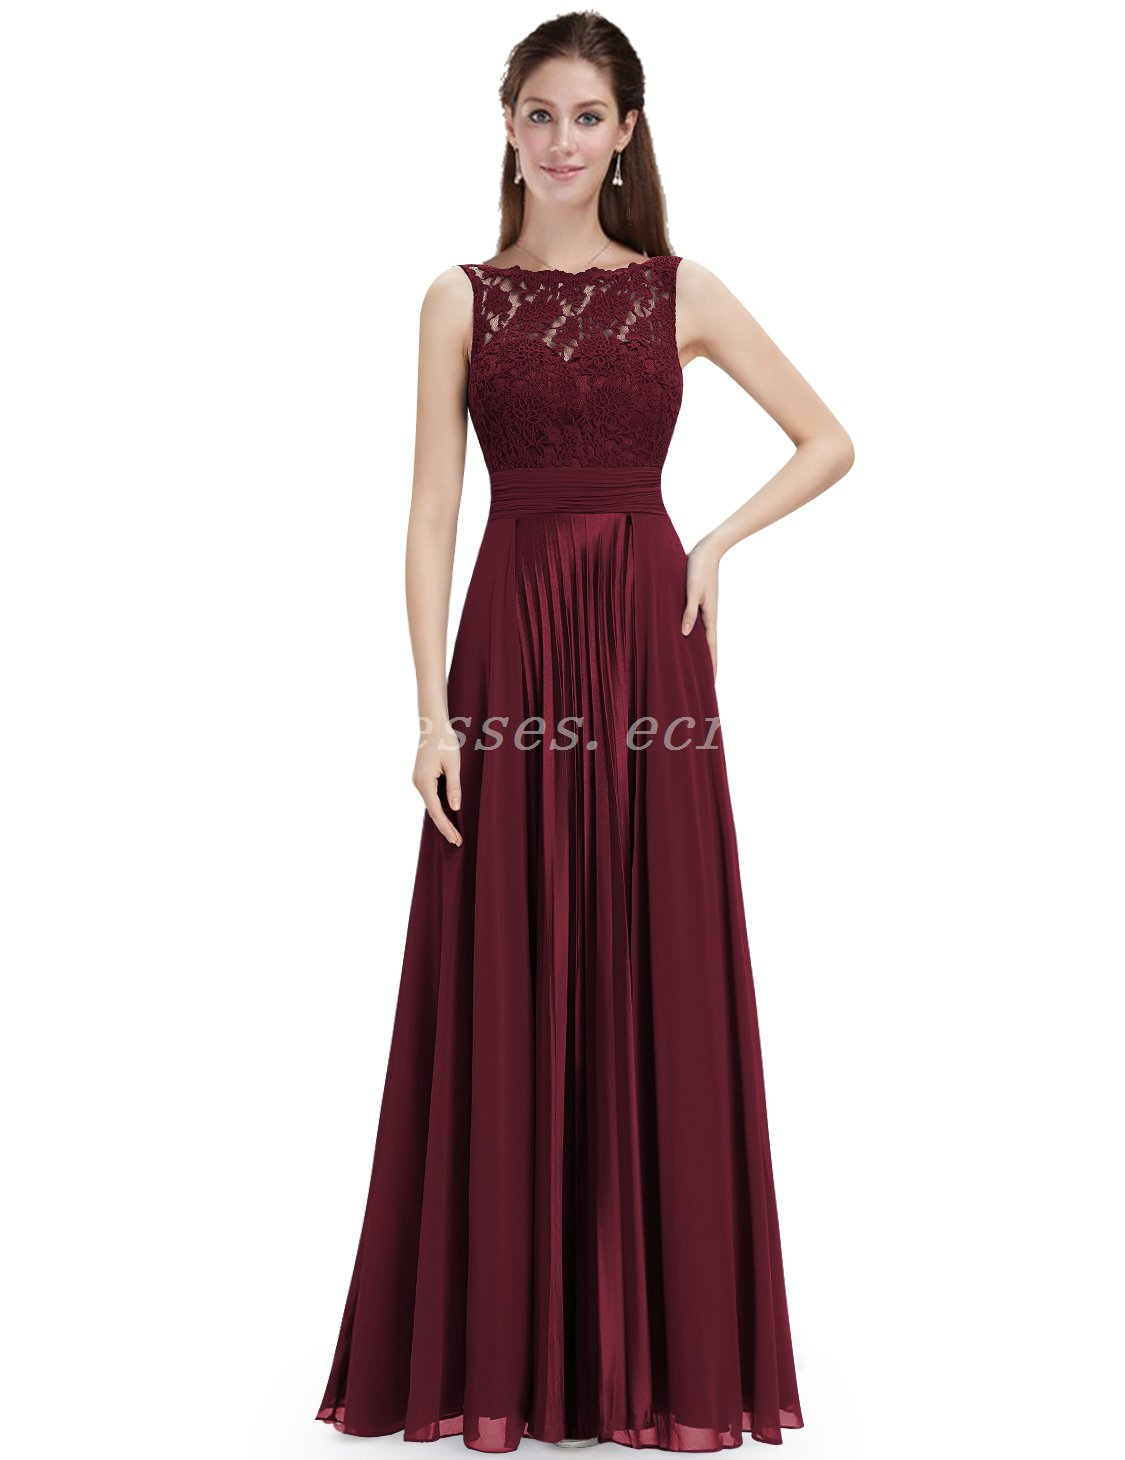 Boat Neckline Chiffon Burgundy Bridesmaid Dresses With Lace